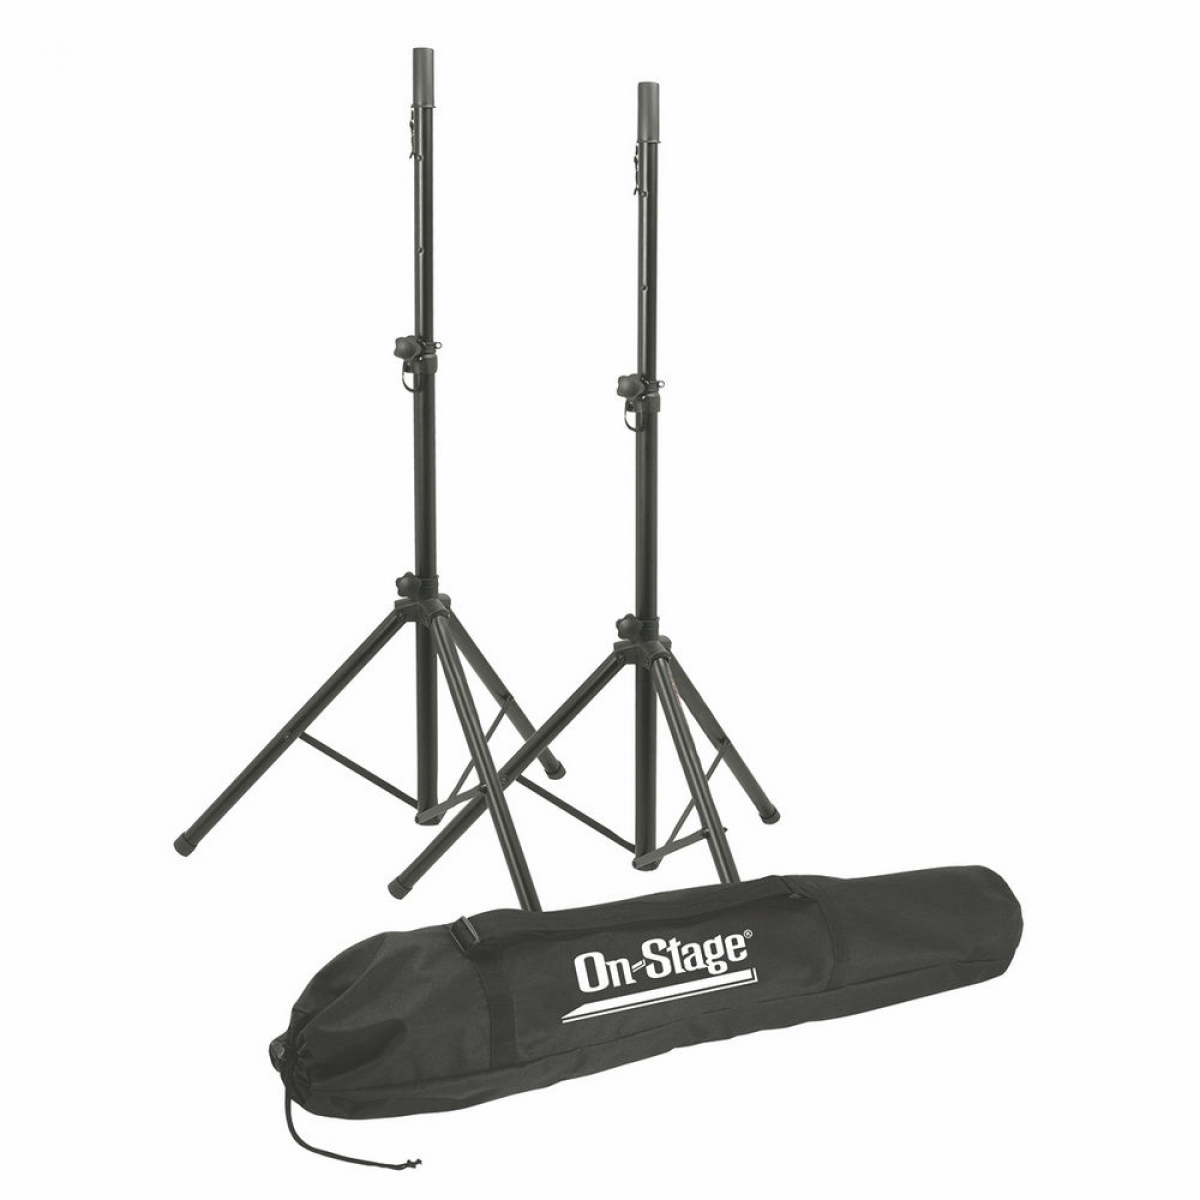 On Stage All-Aluminum Speaker Stand Pack